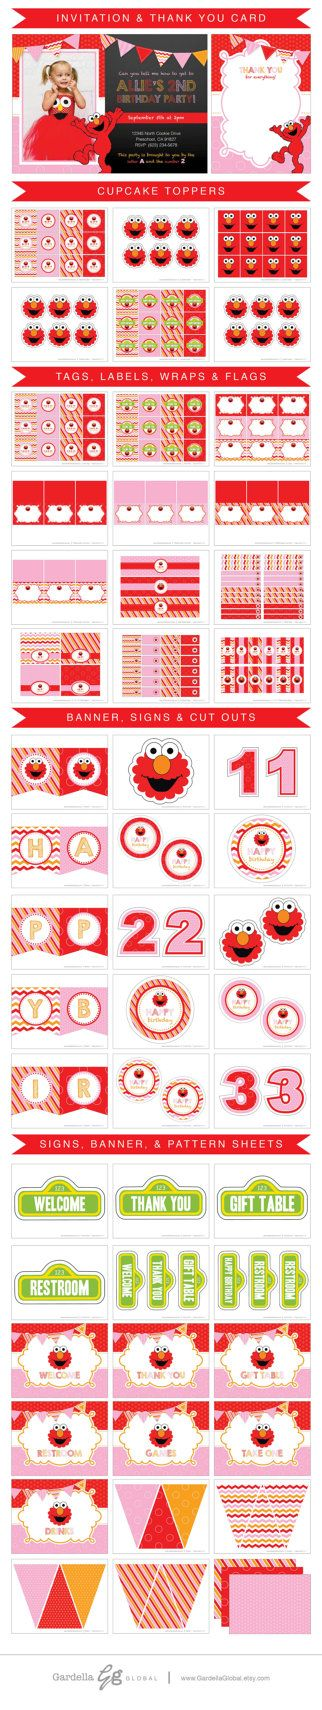 61 best elmo images on pinterest birthdays elmo party and parties elmo invitation girl elmo invite pink elmo by gardellaglobal filmwisefo Choice Image